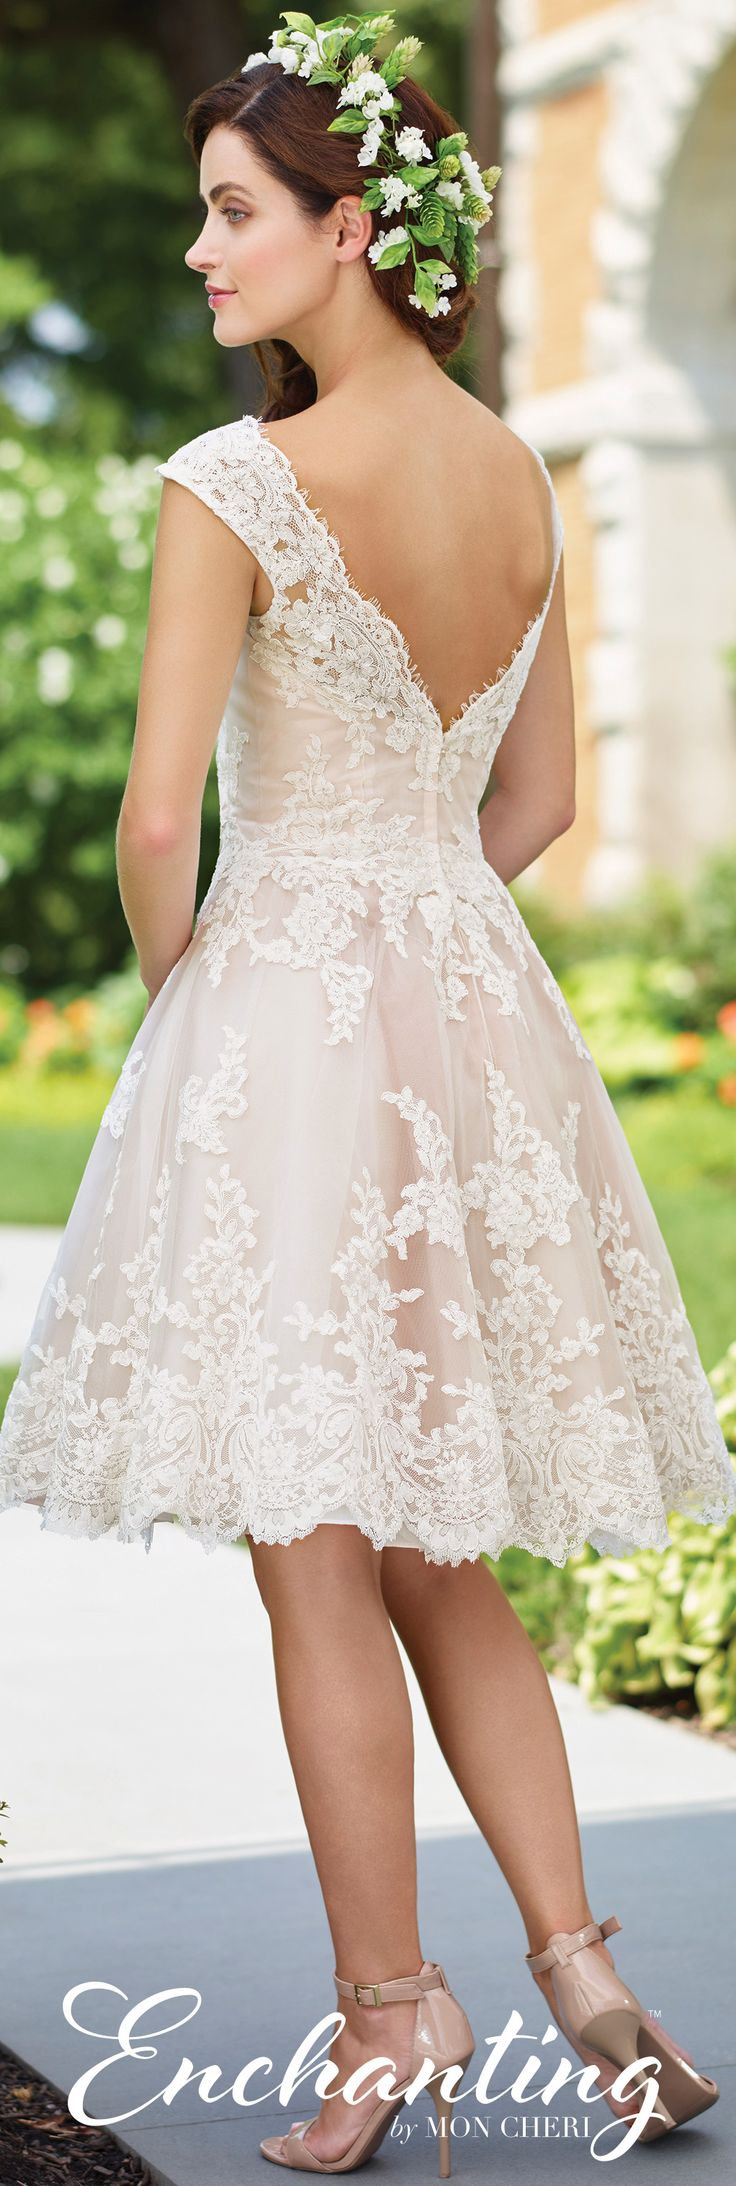 Spectacular Enchanting by Mon Cheri Spring Wedding Gown Collection Style No lace